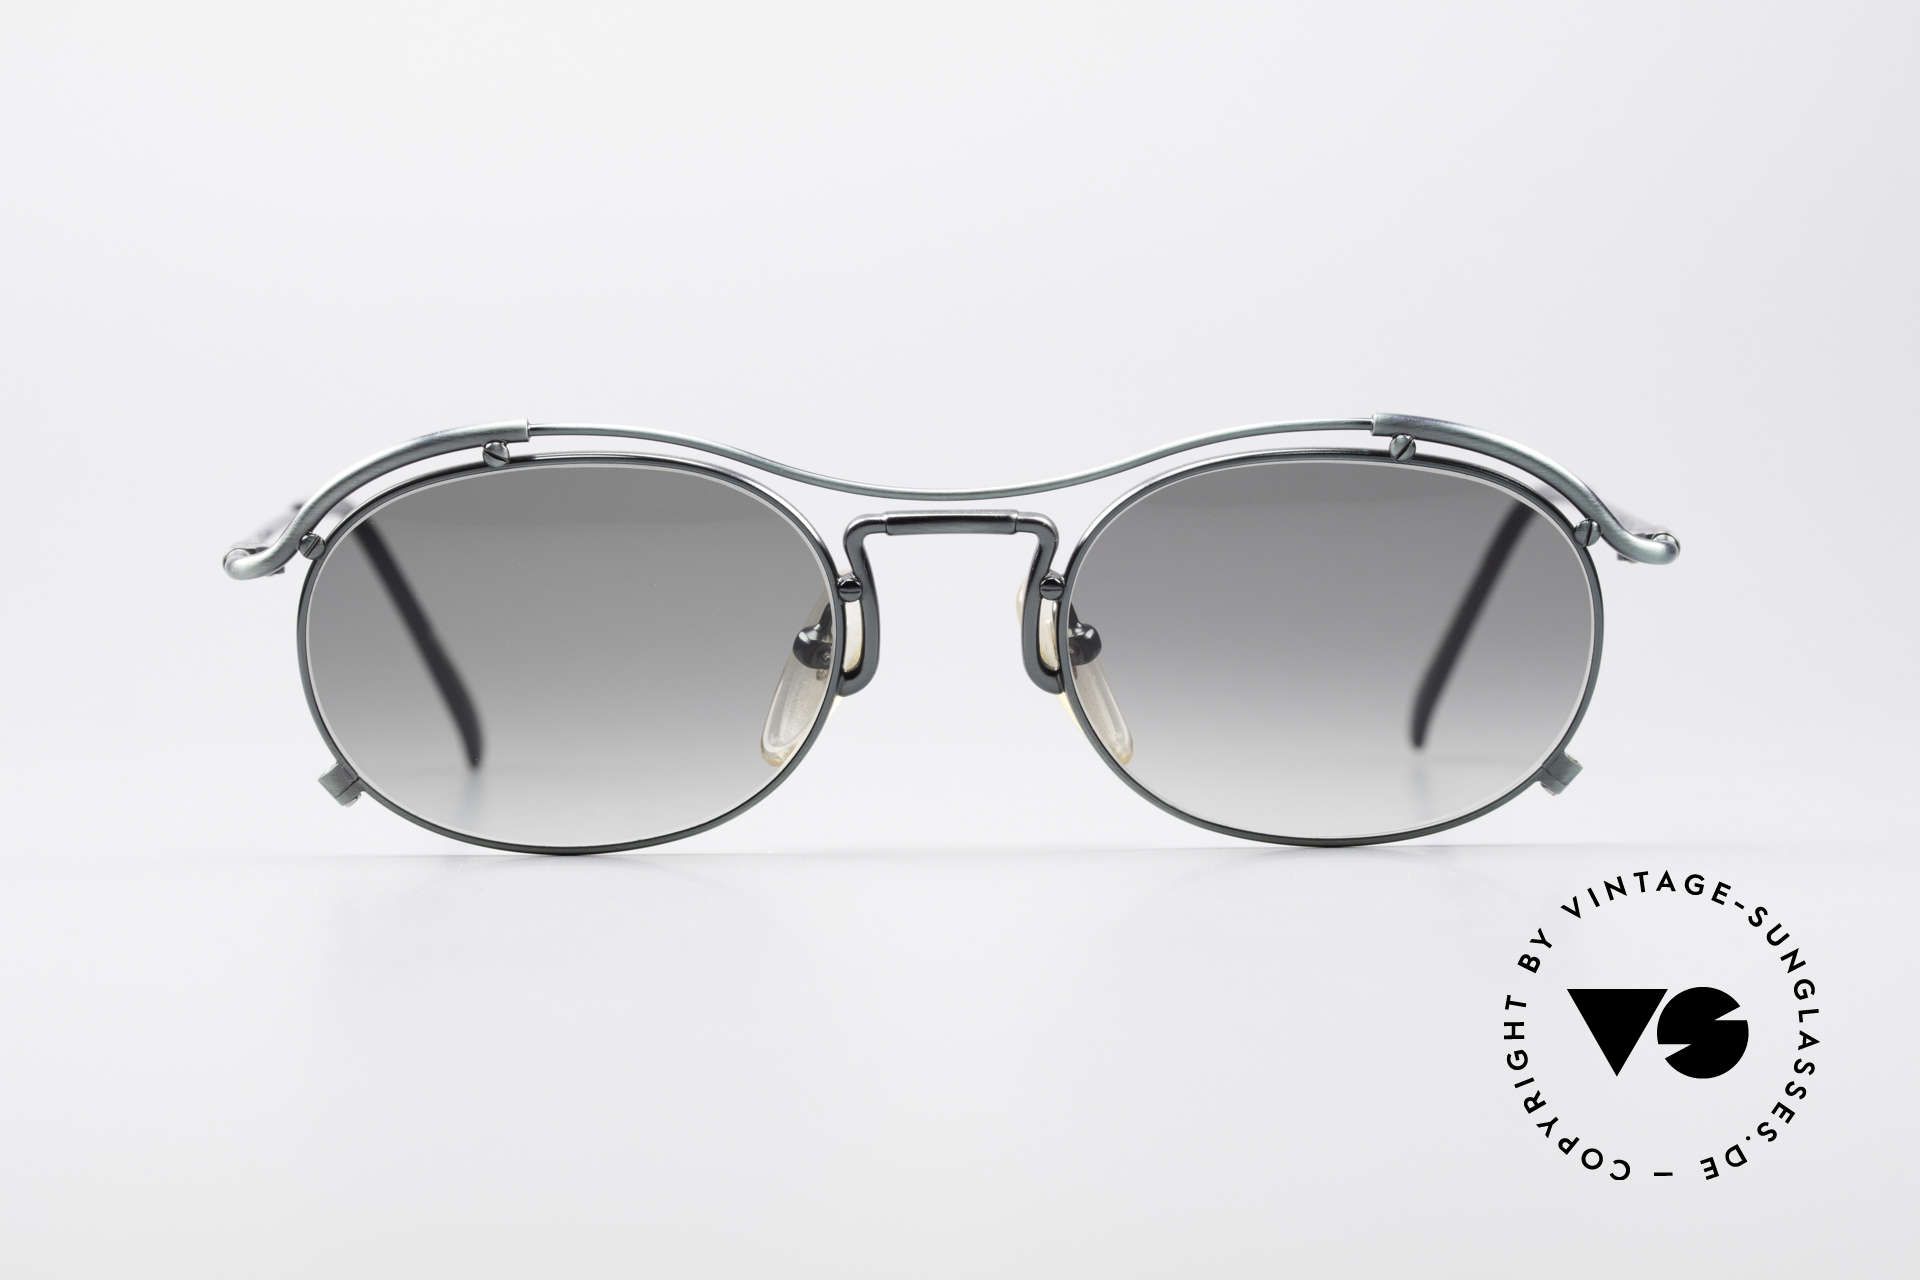 Jean Paul Gaultier 55-2170 Vintage 90's Sunglasses, peppy frame construction; full of verve, RARITY!, Made for Men and Women